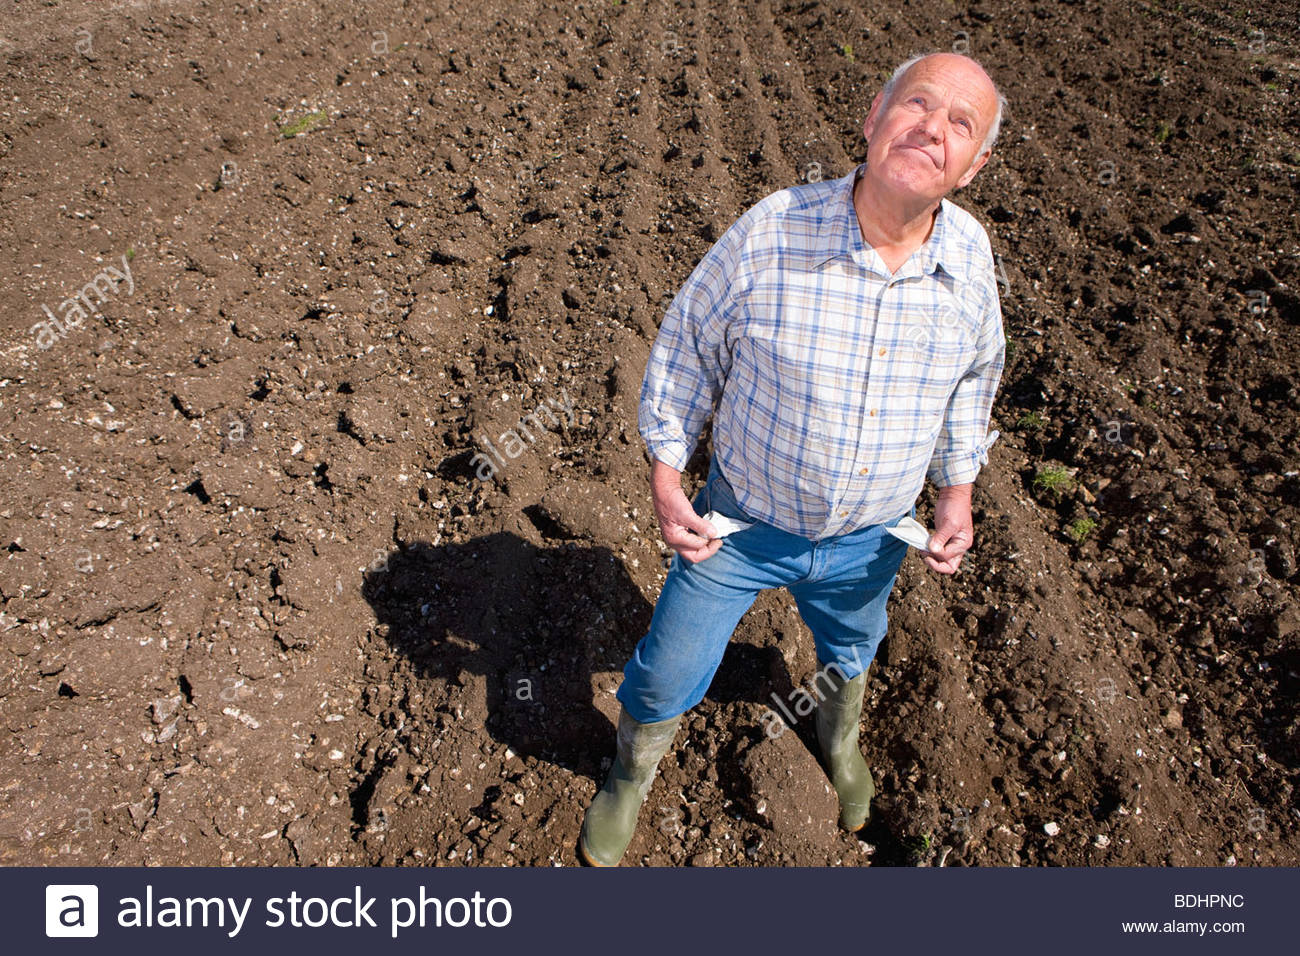 Farmer showing empty pockets and looking up in ploughed field - Stock Image